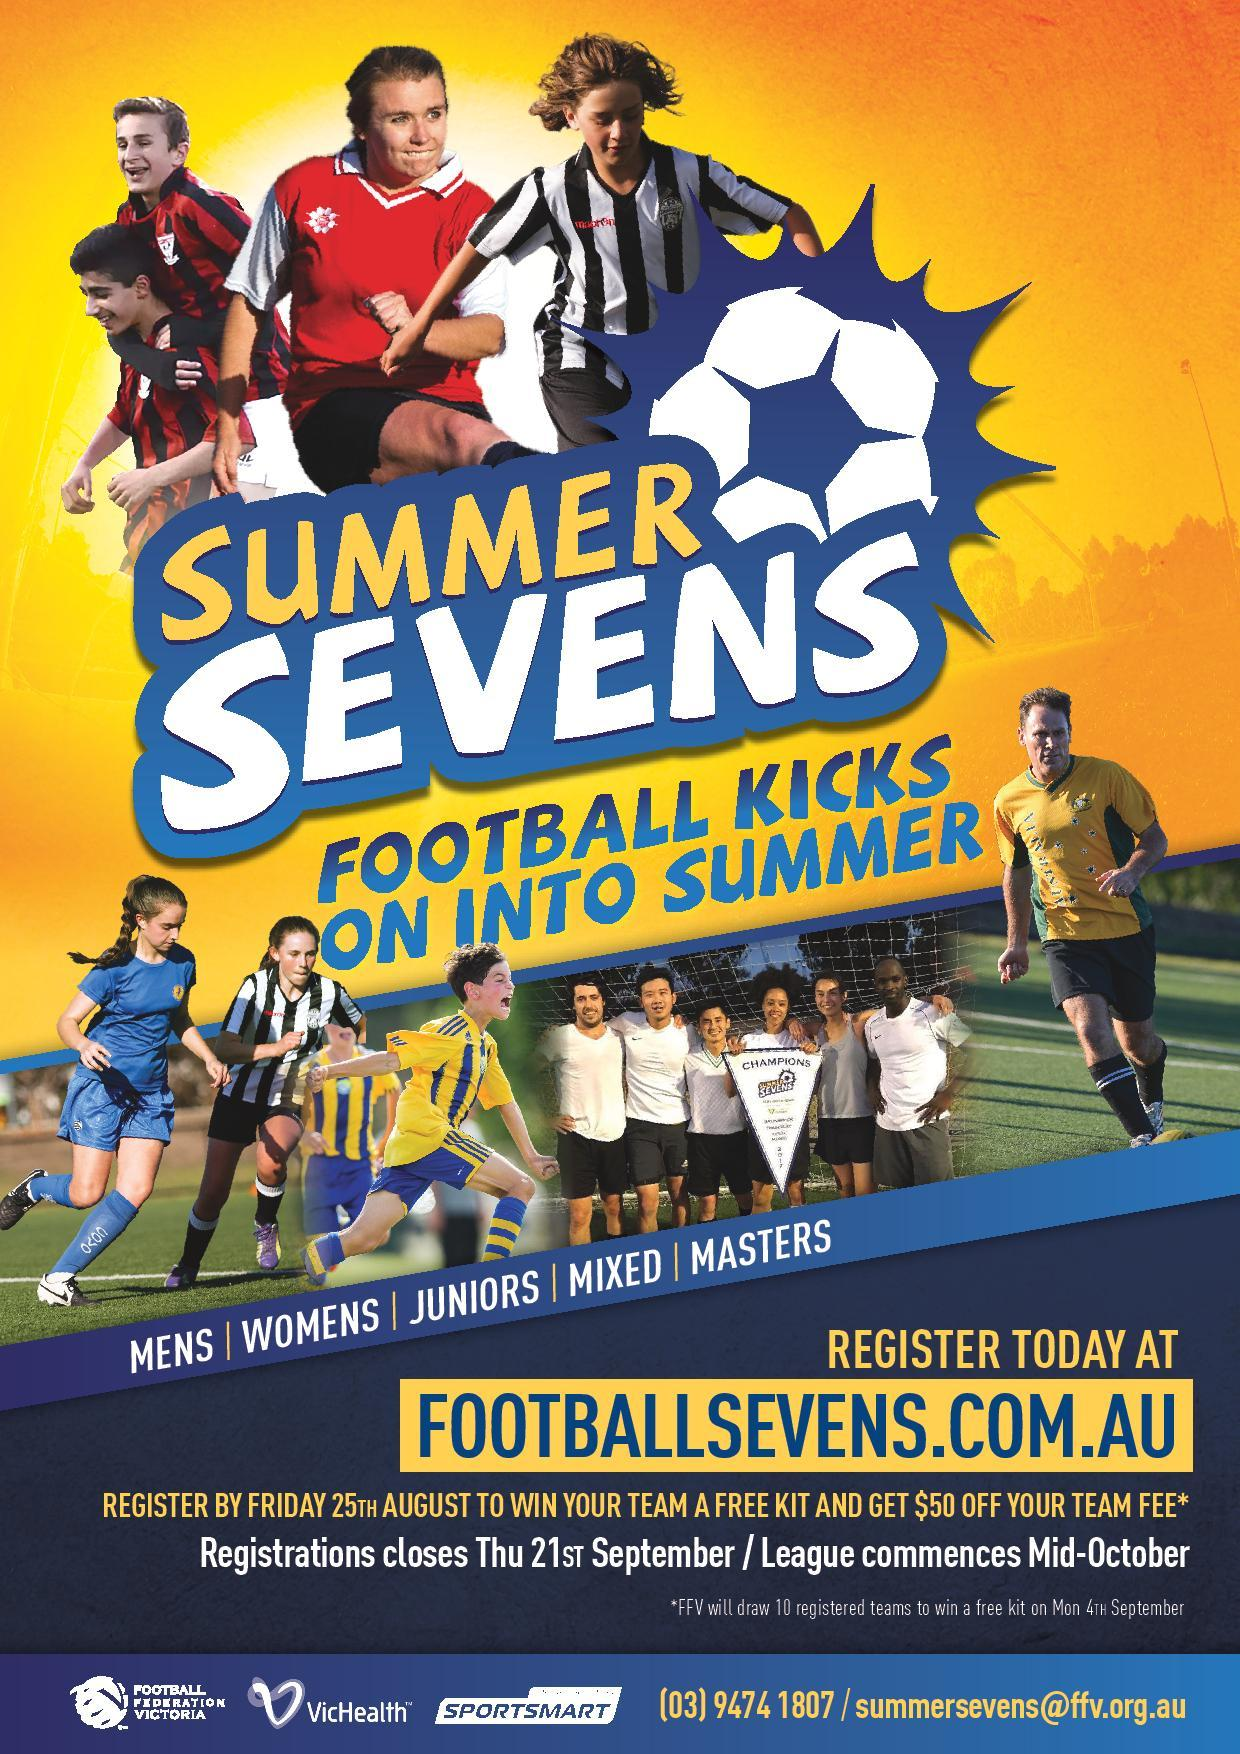 News Register Now For Summer Sevens At One Of Two Venues In The Geelong Region Starting October Ffv Geelong Region Sportstg